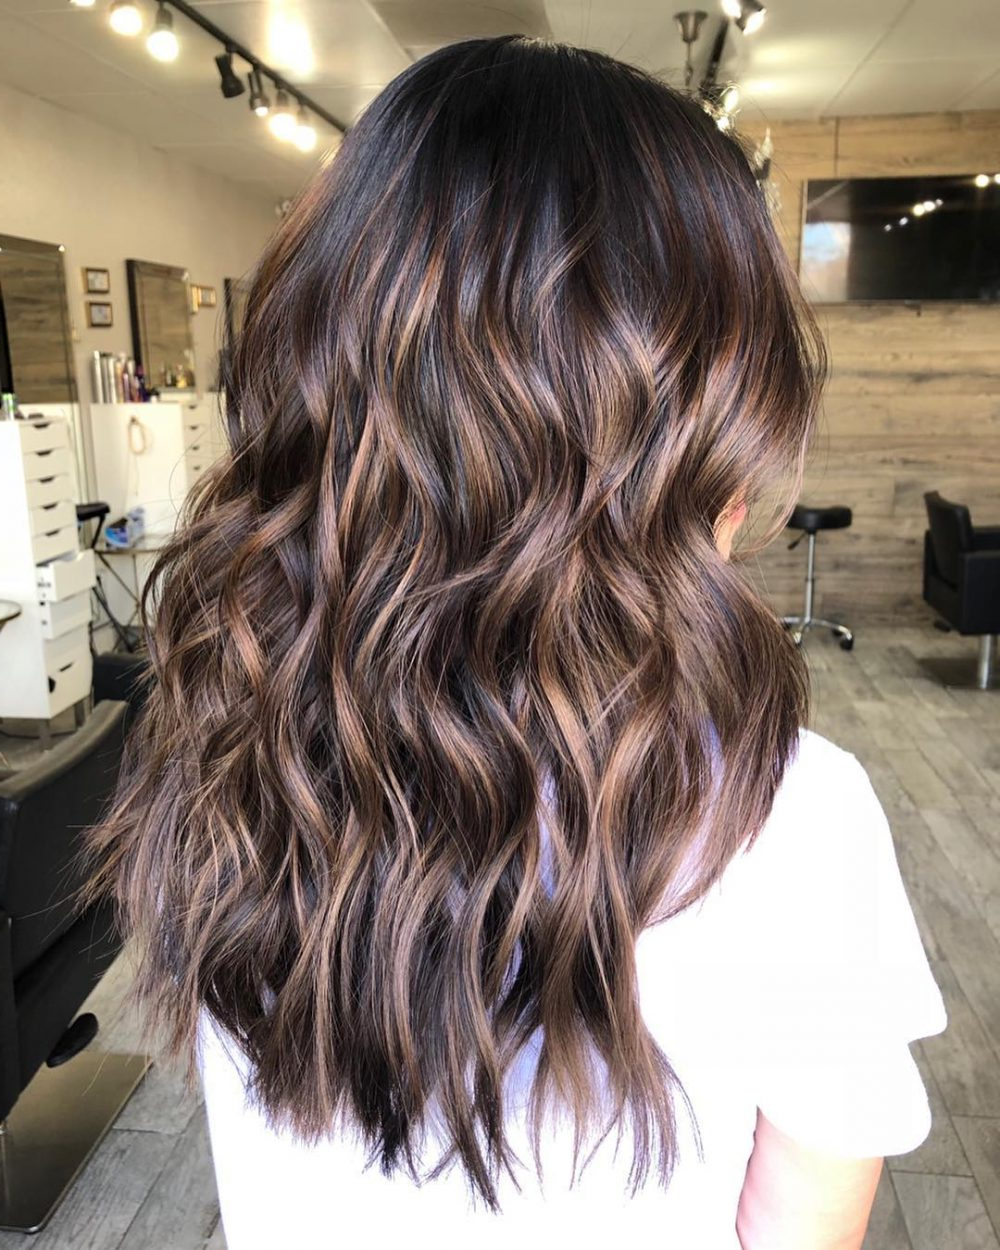 2019 Popular Medium Brown Tones Hairstyles With Subtle Highlights